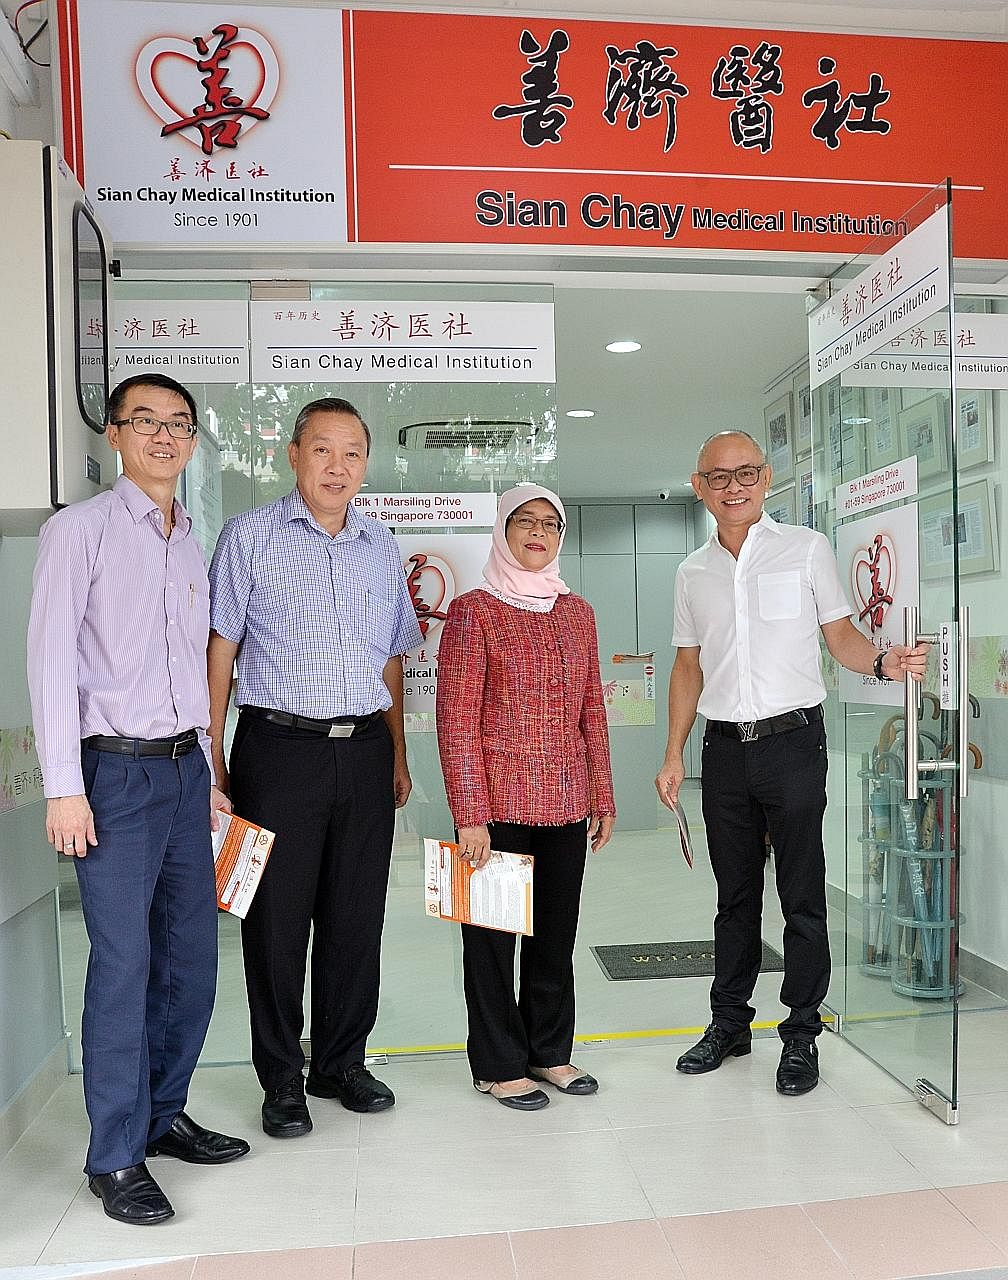 Speaker of Parliament and MP Halimah Yacob visiting Sian Chay's Marsiling clinic last Friday. With her are (from left), the constituency's Citizens' Consultative Committee chairman Bob Shaw; vice-chairman Lim Hock Chee; and Sian Chay chairman Toh Soo